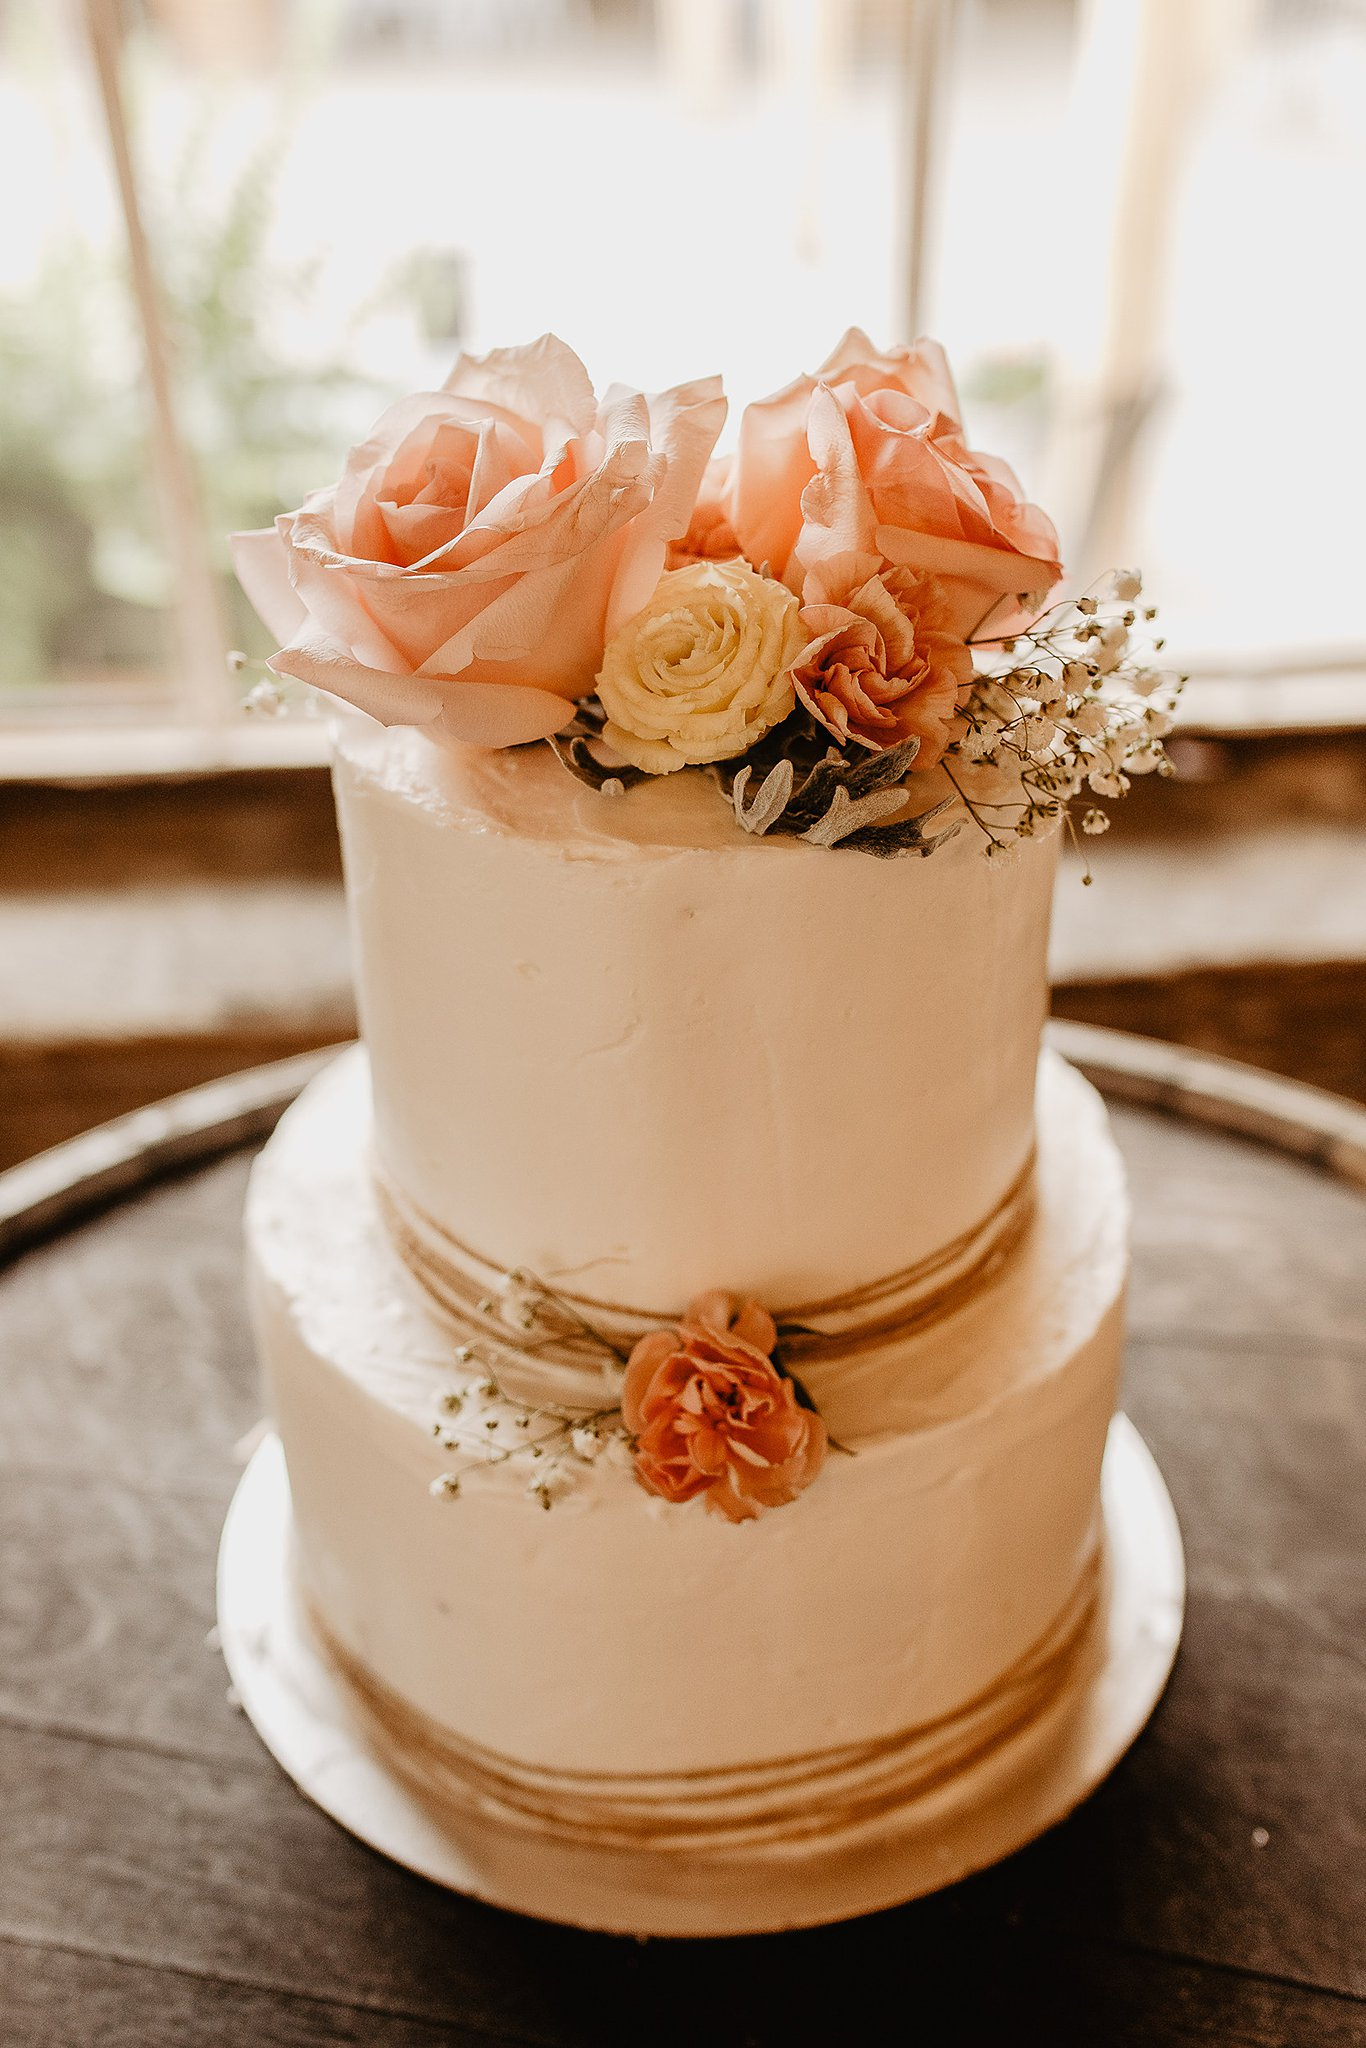 unique wedding photos of a brides wedding cake